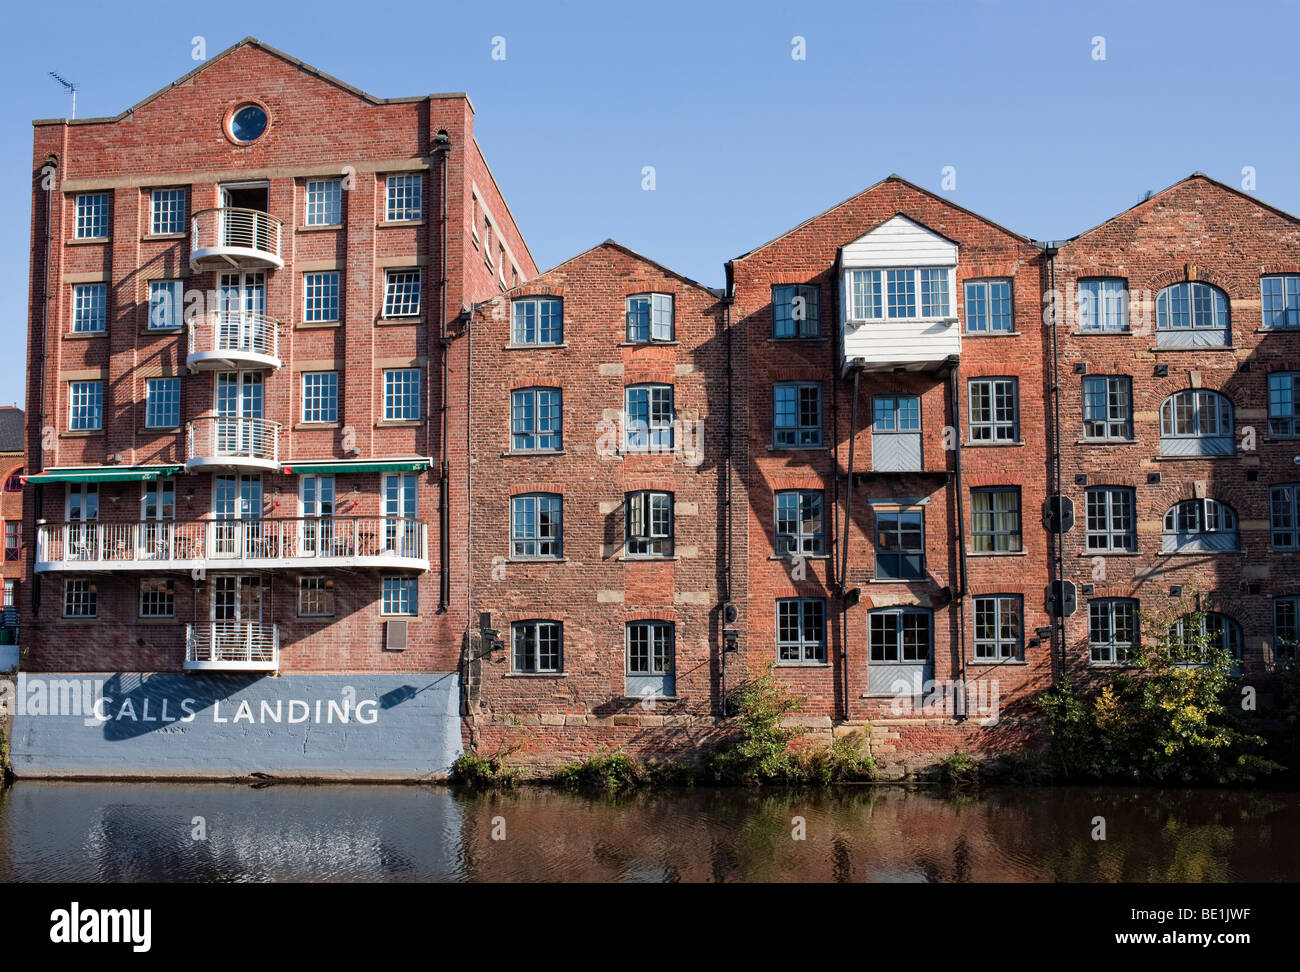 Calls Landing on the River Aire in Leeds - Stock Image